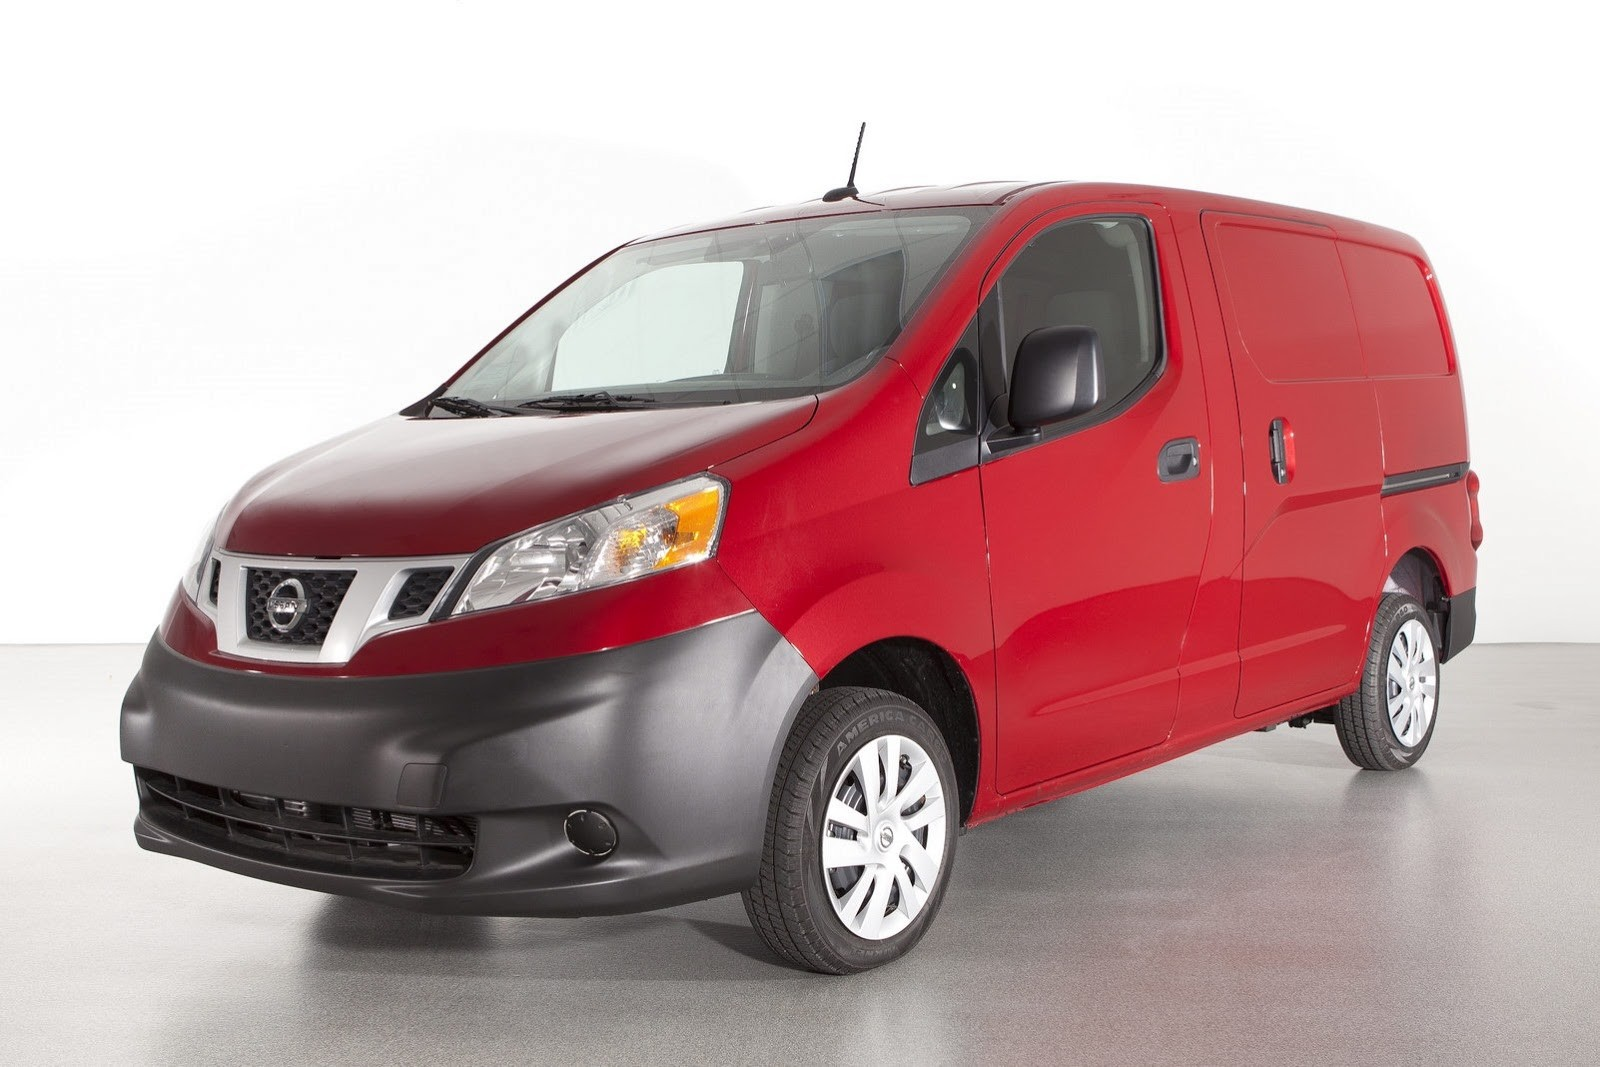 Nissan_nv200_%d1%84%d1%83%d1%80%d0%b3%d0%be%d0%bd_original